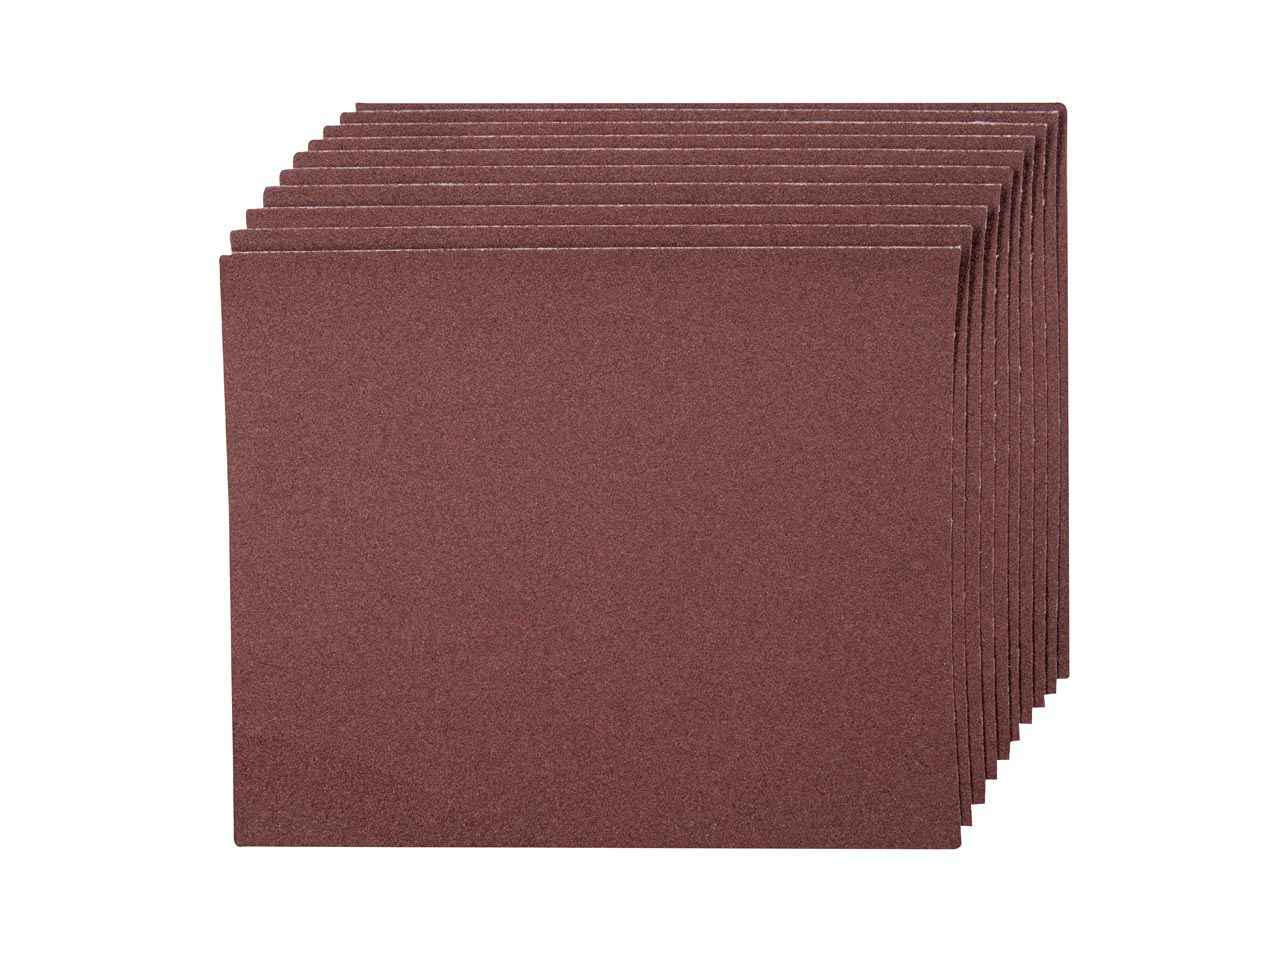 Silverline Emery Cloth Sanding Sheets 230mm x 280mm 120 Grit 30 Pack 371759